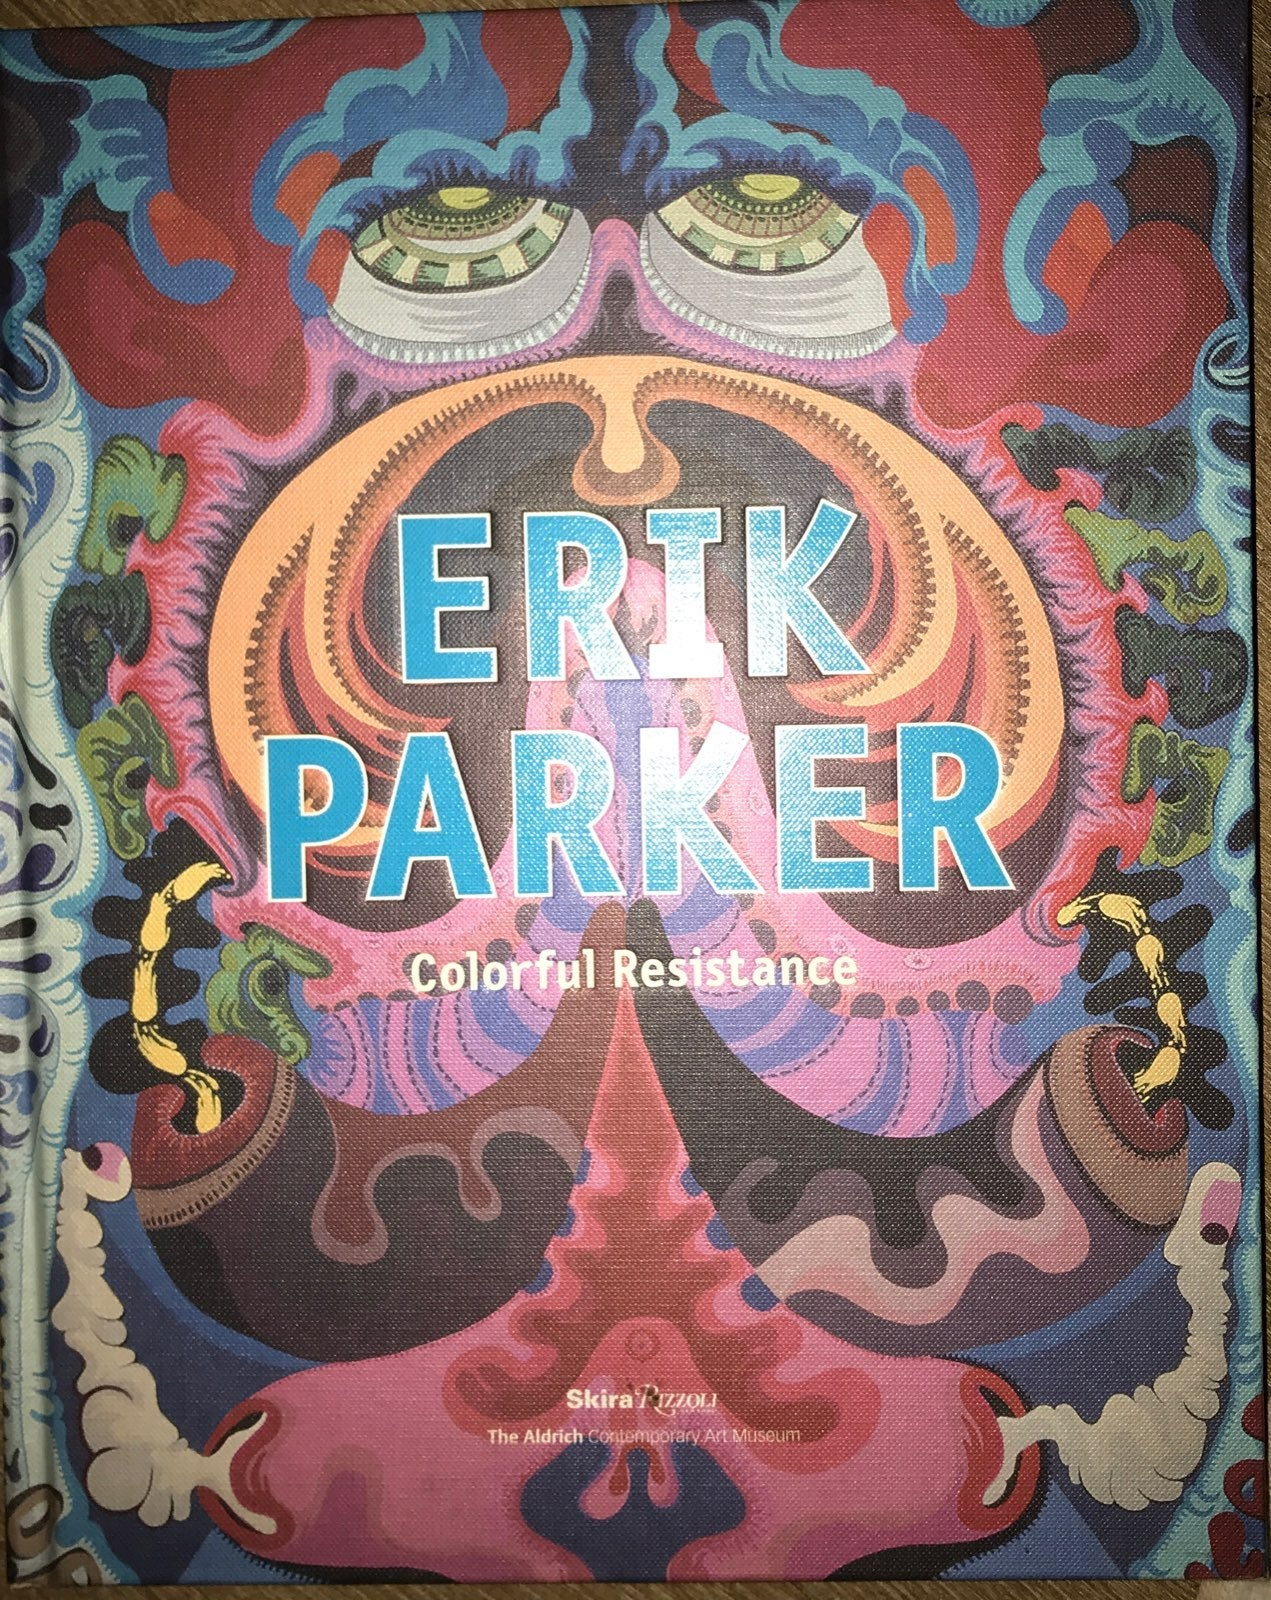 coffee table book of art by Erik Parker